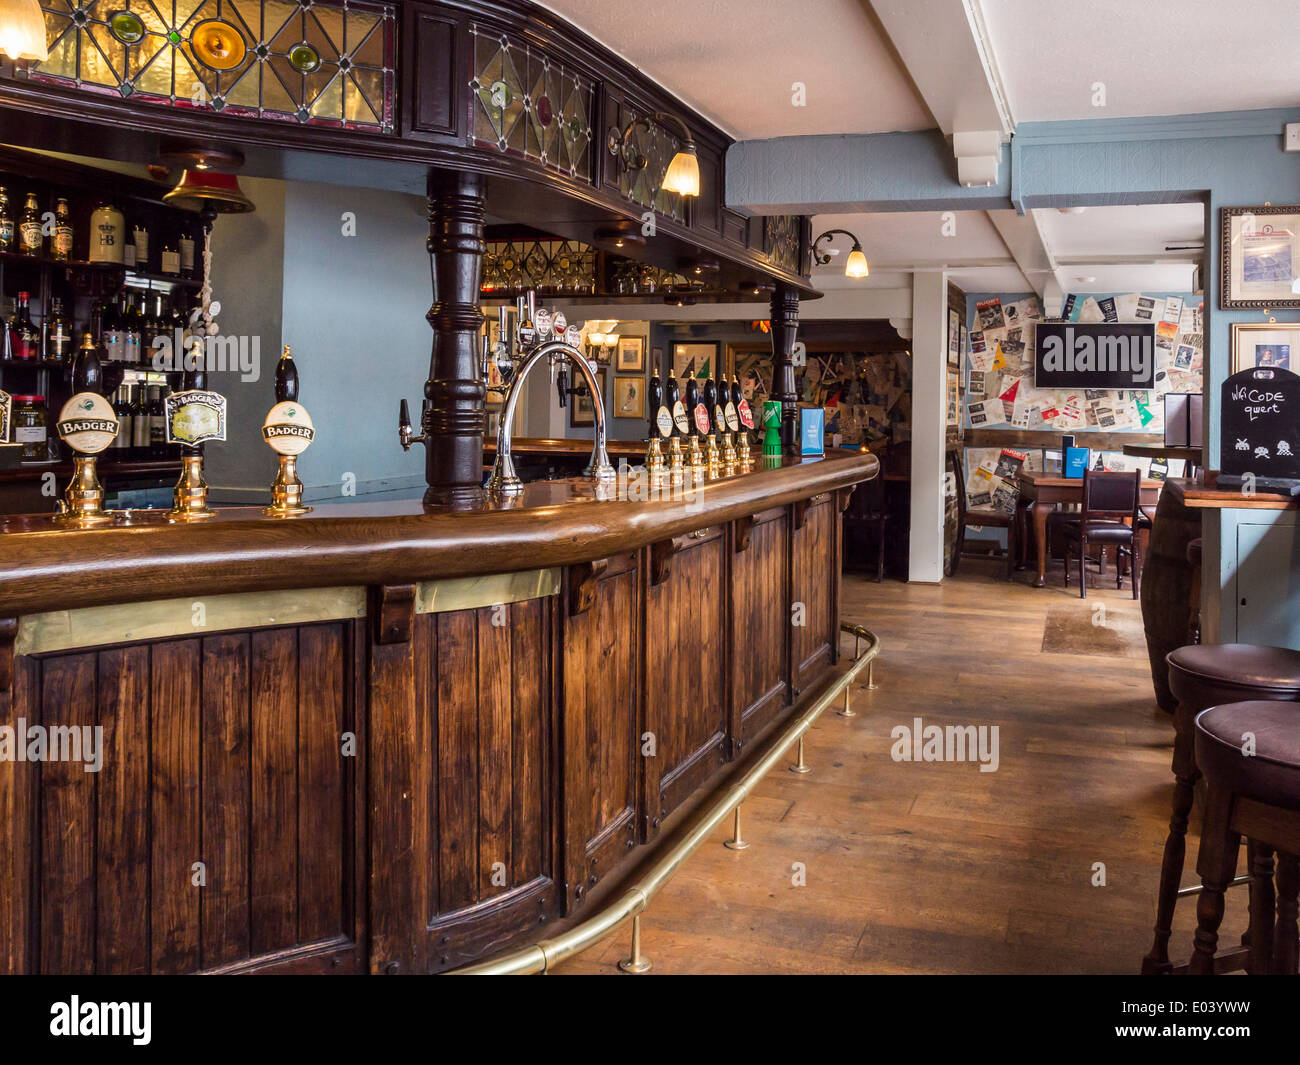 The Eel Pie Pub Interior With Wooden Bar Beer Pumps And